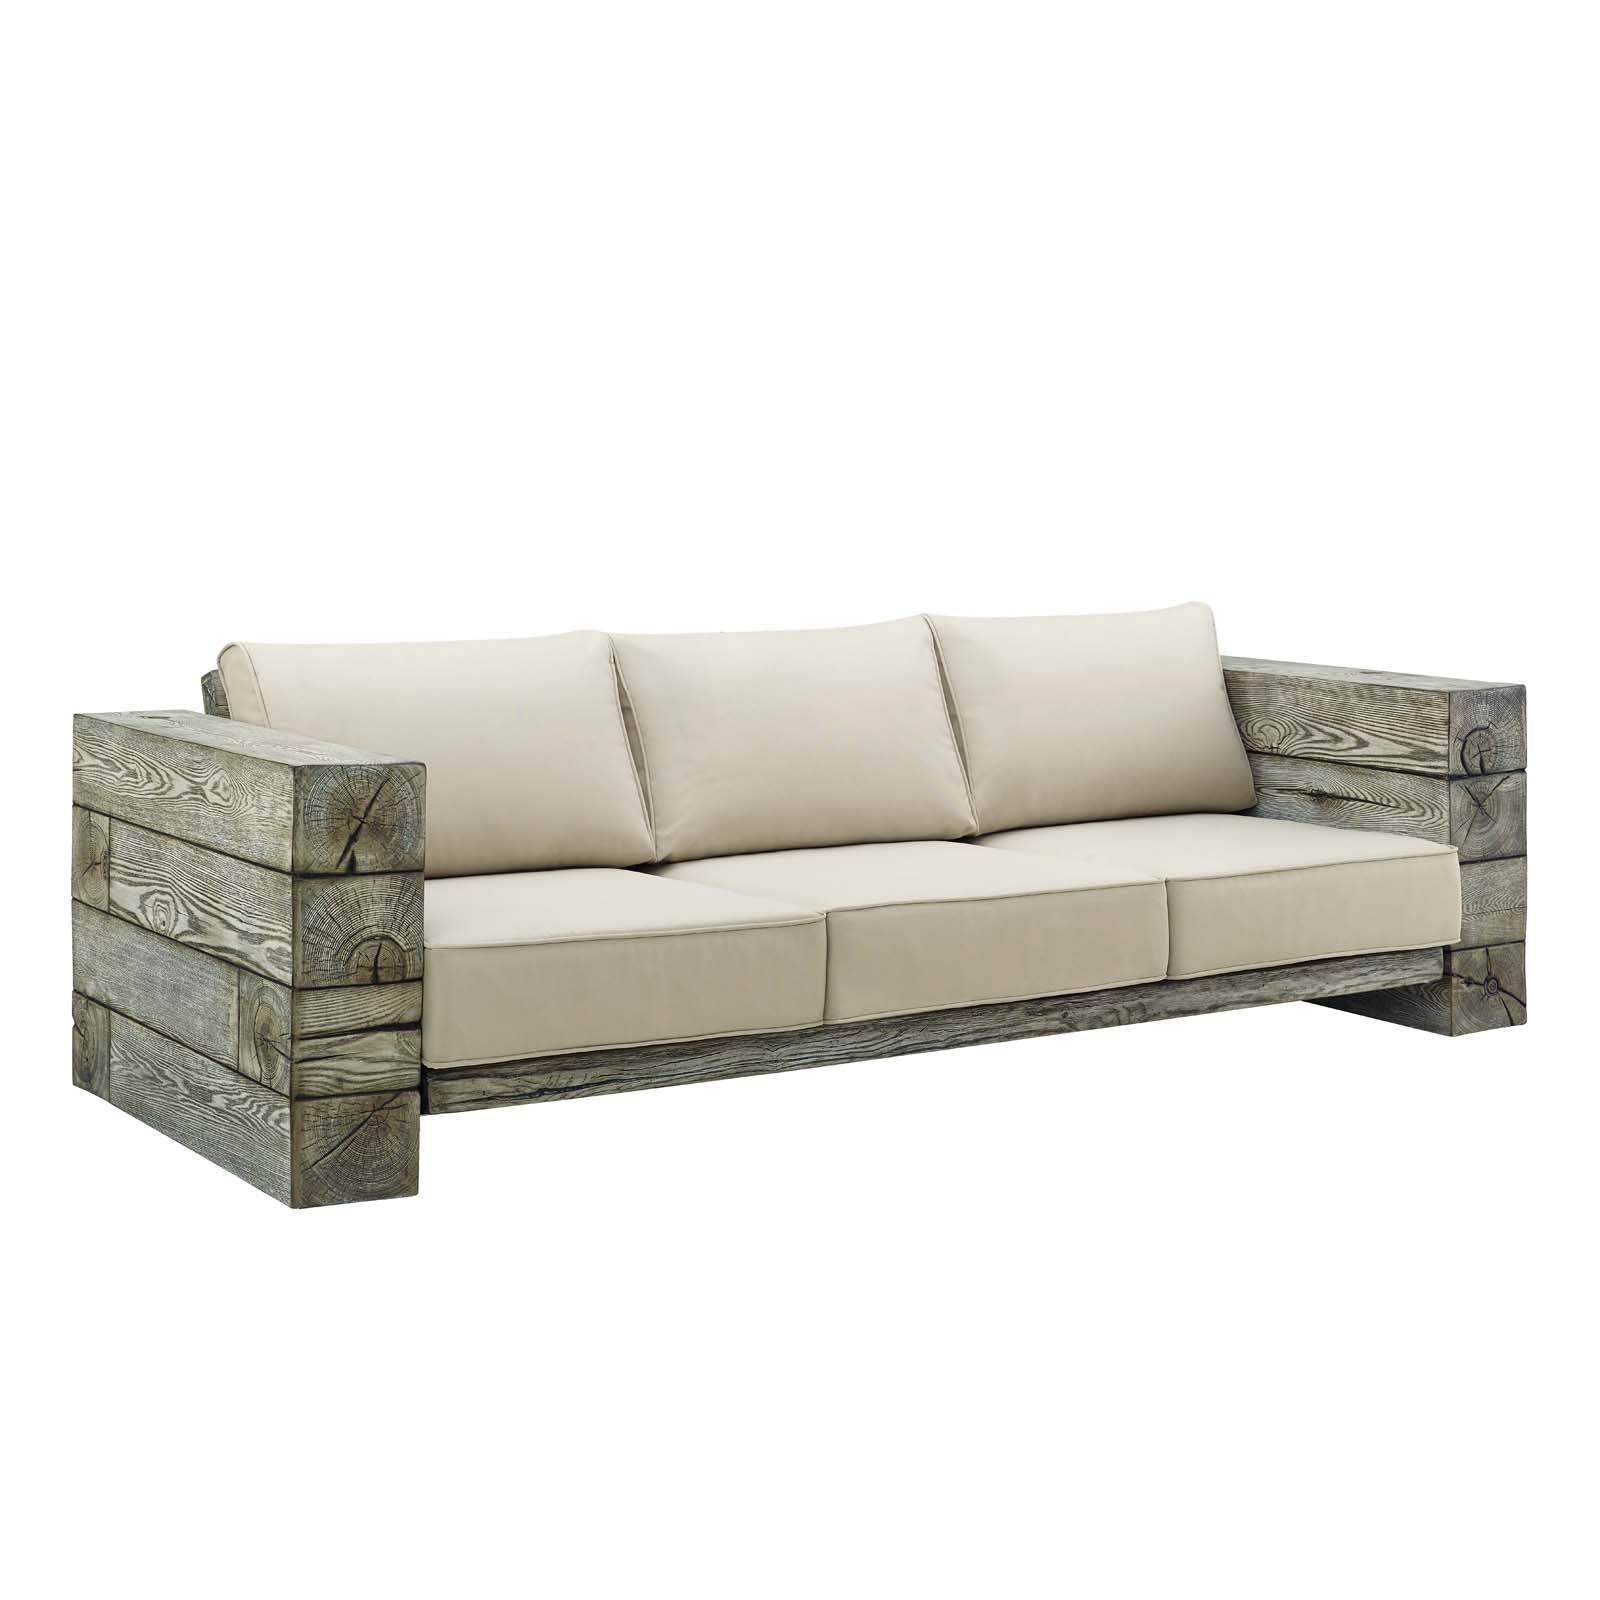 Manteo Rustic Coastal Outdoor Patio Sofa in Light Gray Beige